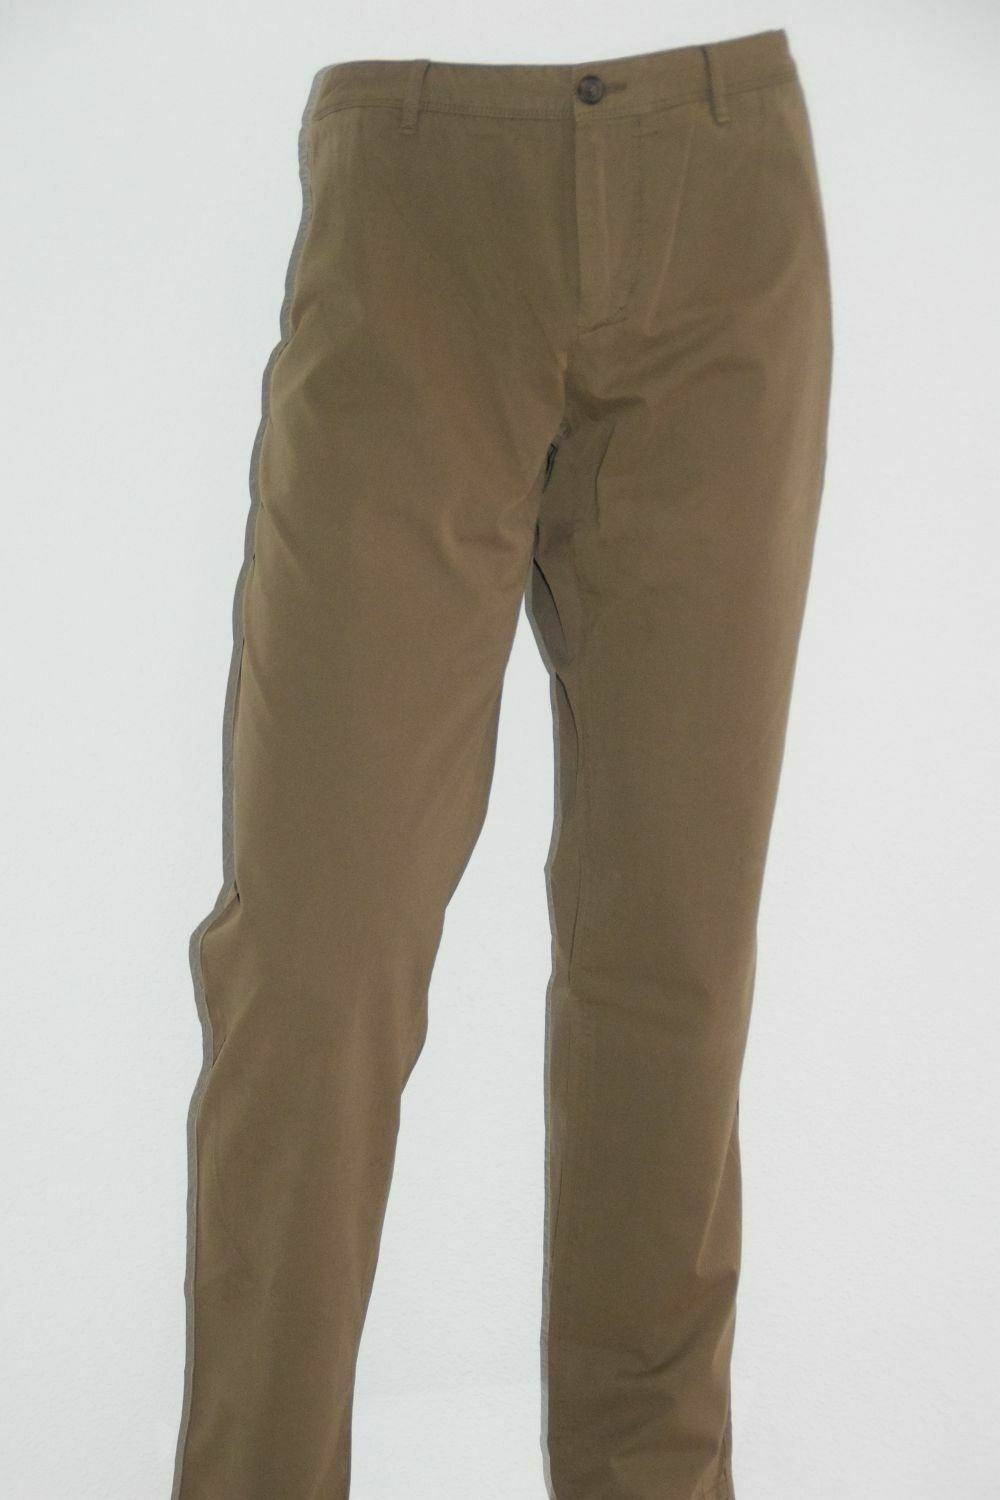 HUGO BOSS HOSE Mod. Crigan2-D Gr. 28 Regular Fit Dark Beige